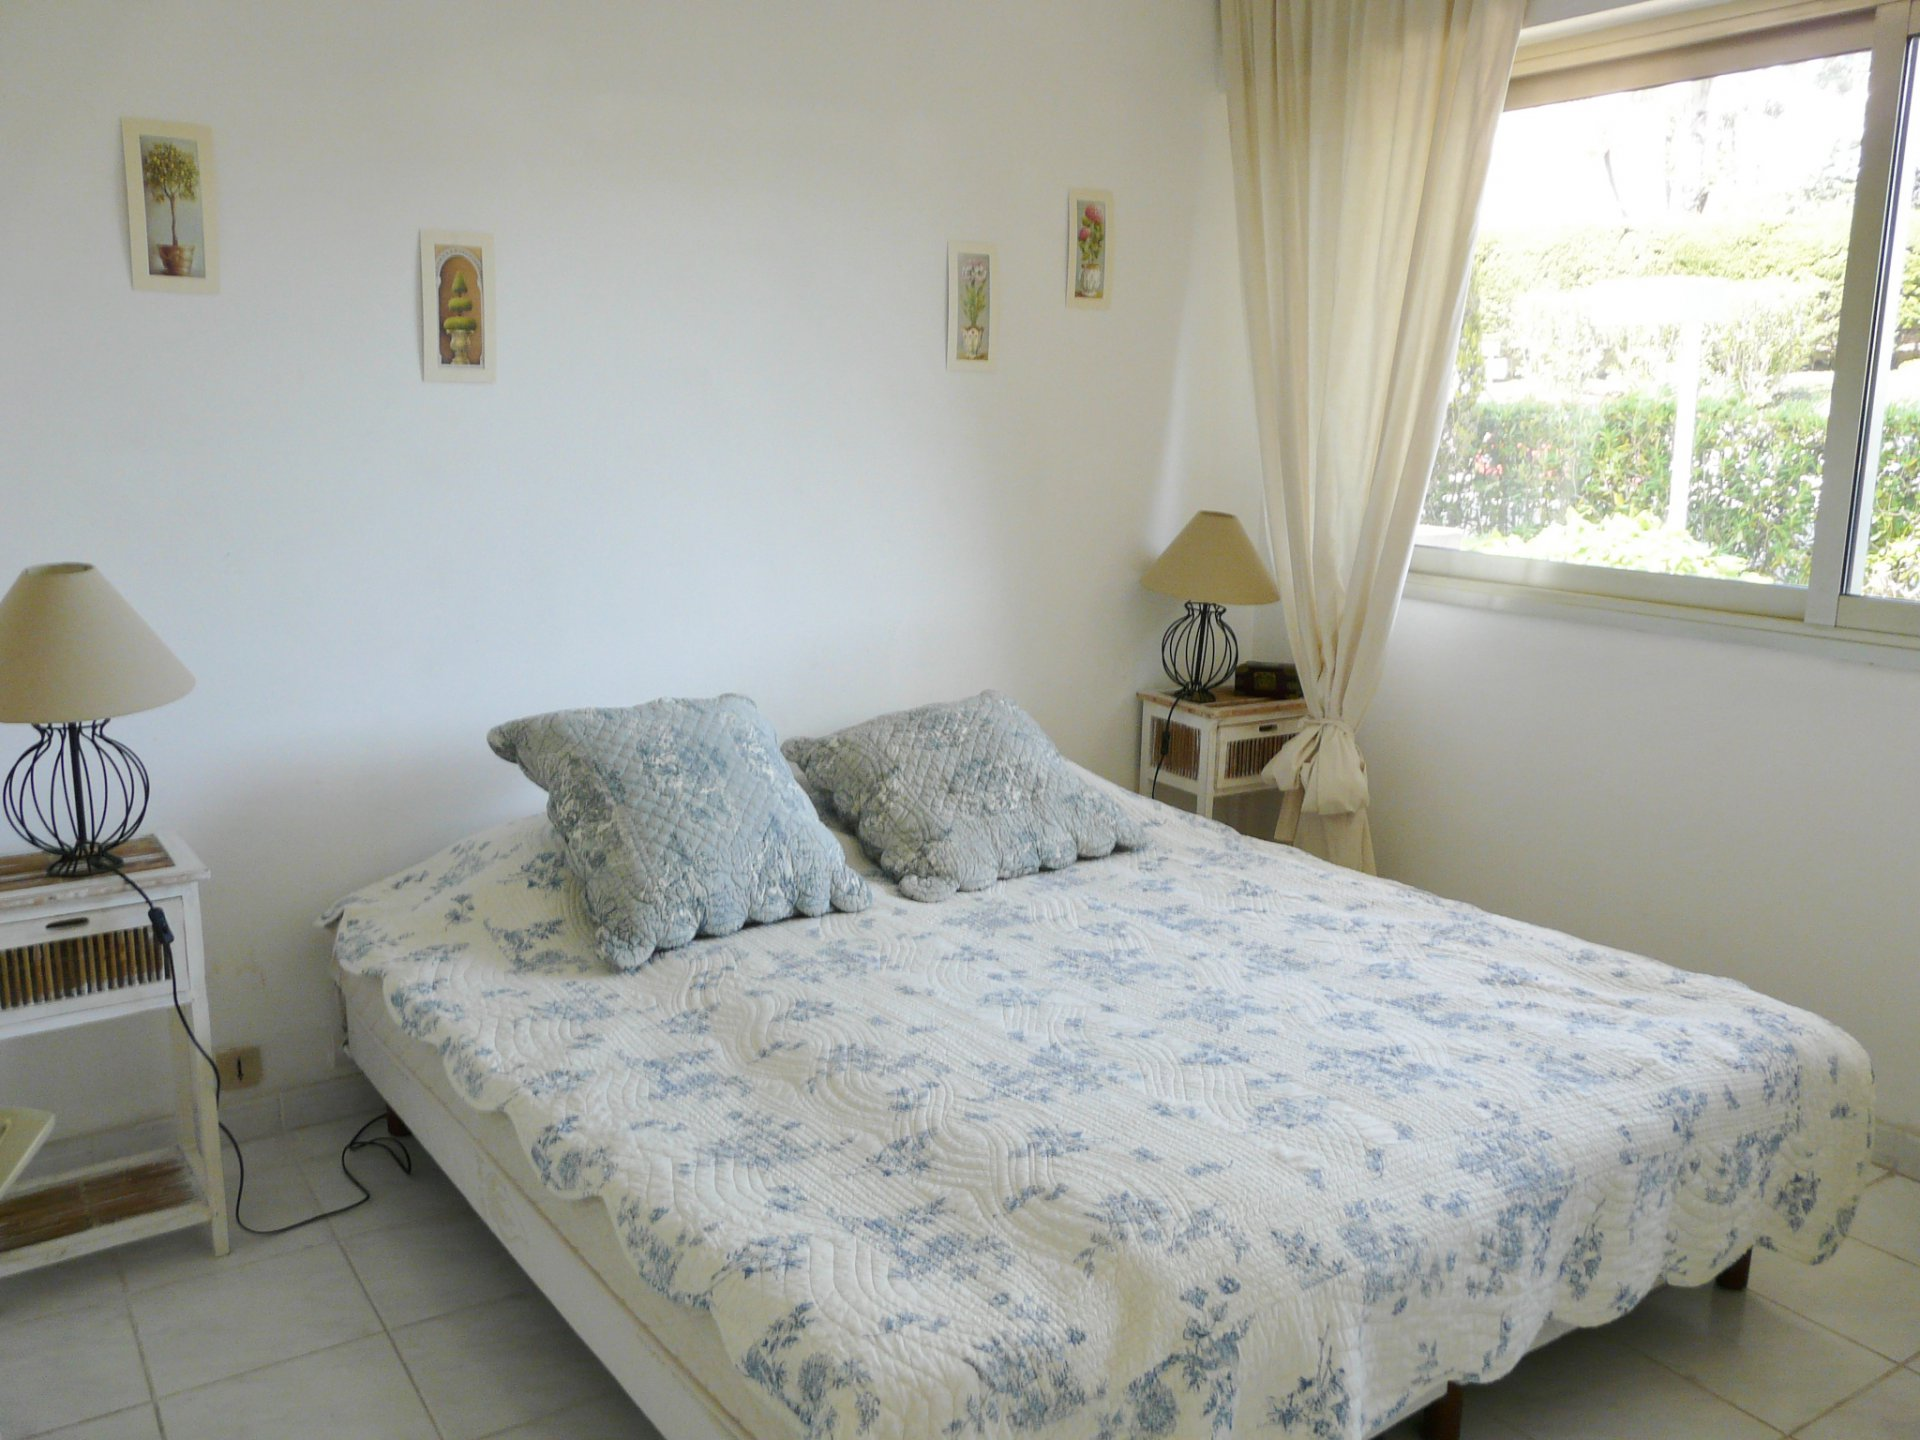 BEAUTIFUL ONE BEDROOM FURNISHED APARTMENT AVAILABLE LONG TERM RENTAL